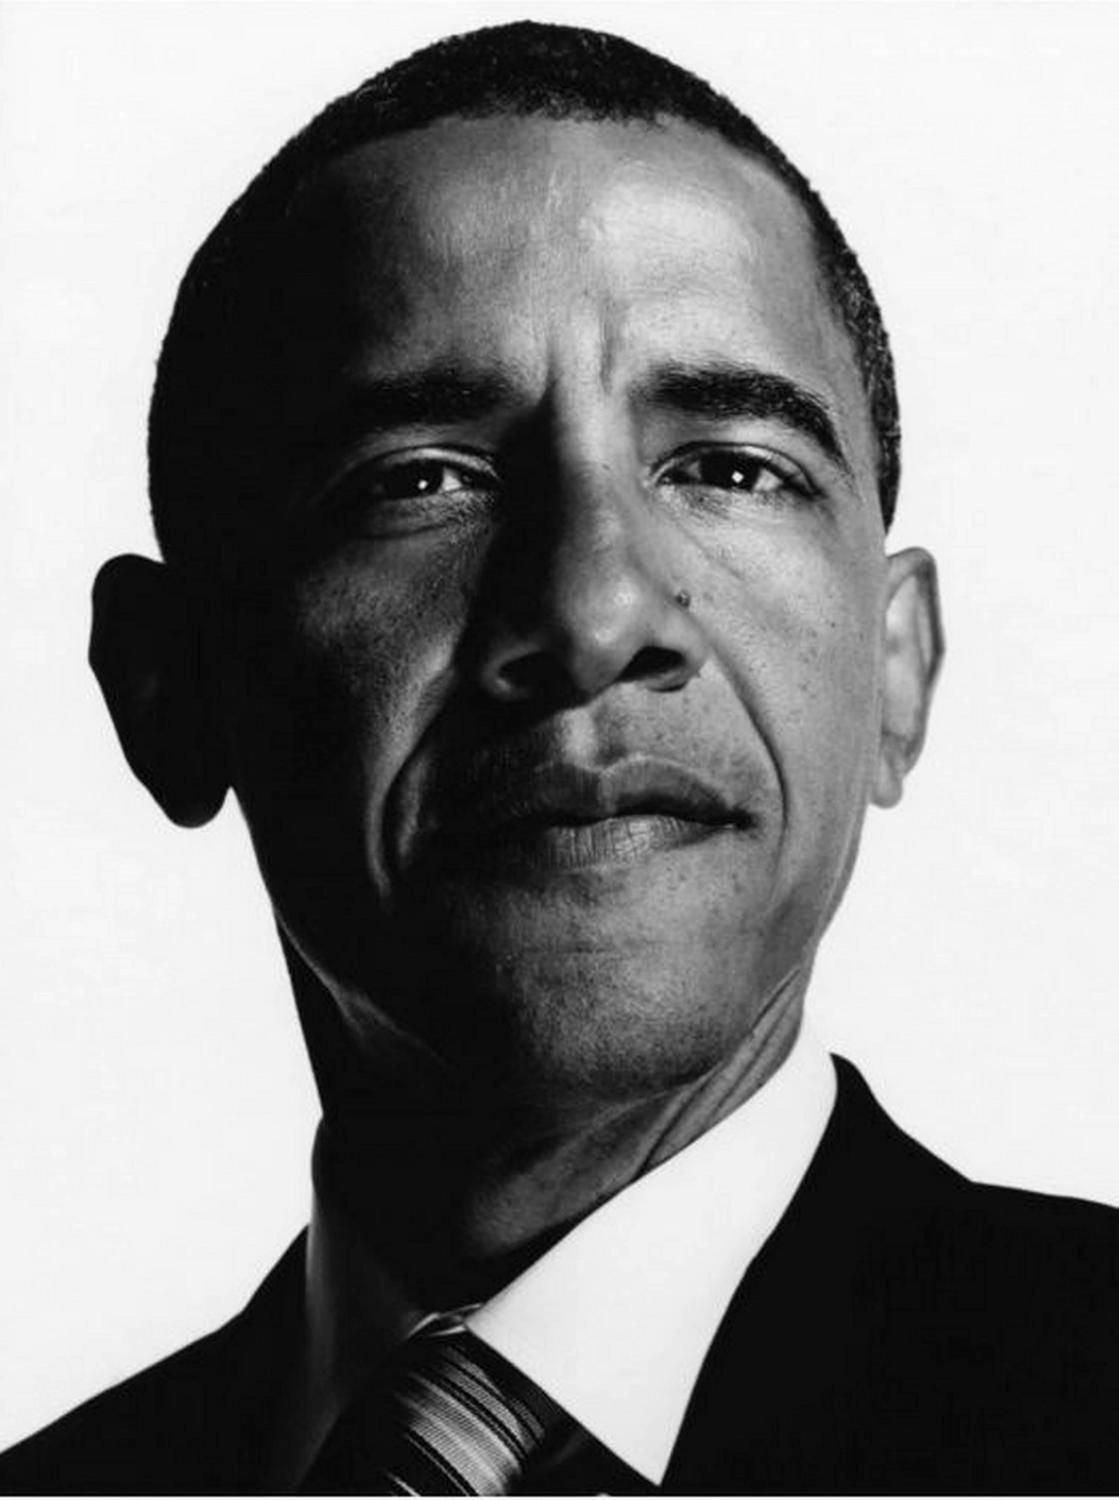 Image Result For Nigel Parry Photography Obama Portrait Expressions Photography Black Art Pictures